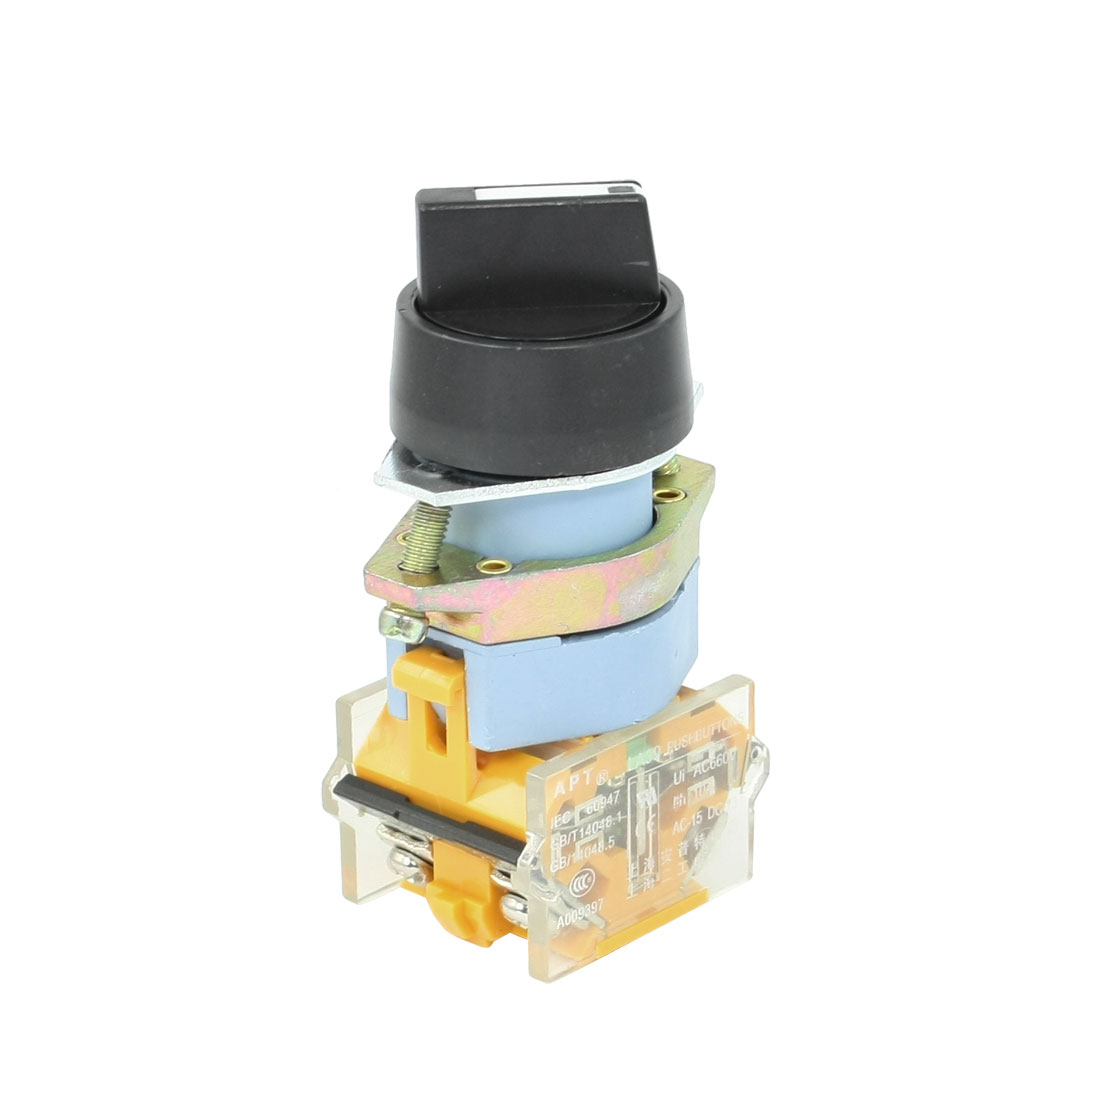 AC 660V 10A NO/NC 4-Terminal 3-Position Selector Self-Locking Push Button Switch